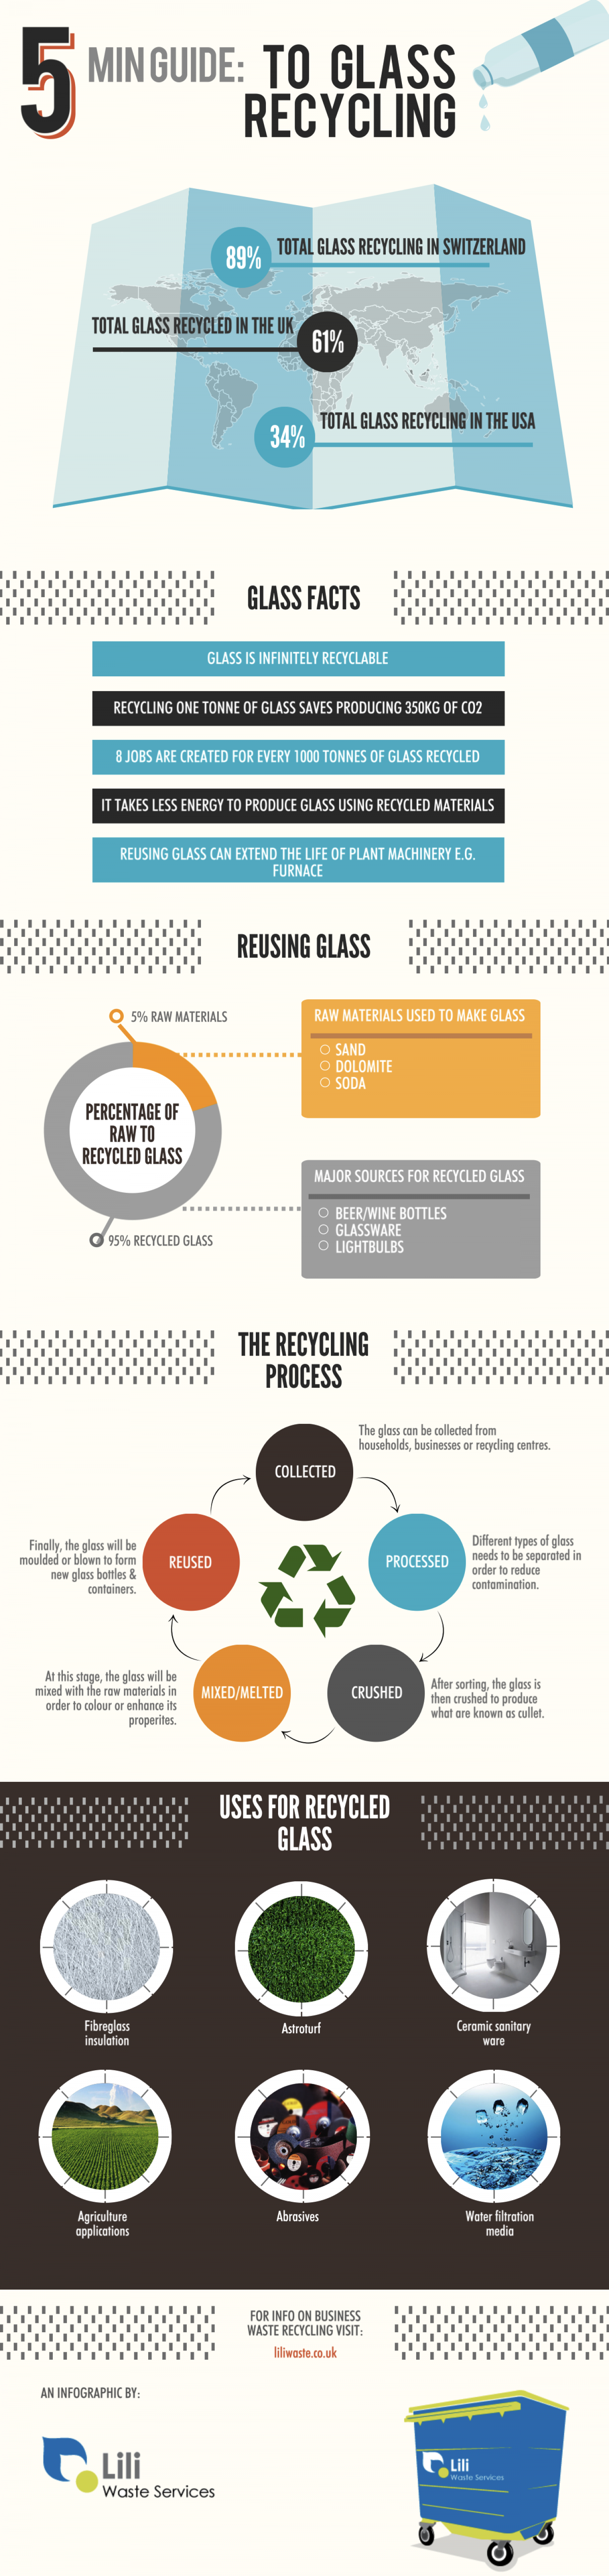 Glass Recycling Facts - Simple Information with a Big Impact Infographic